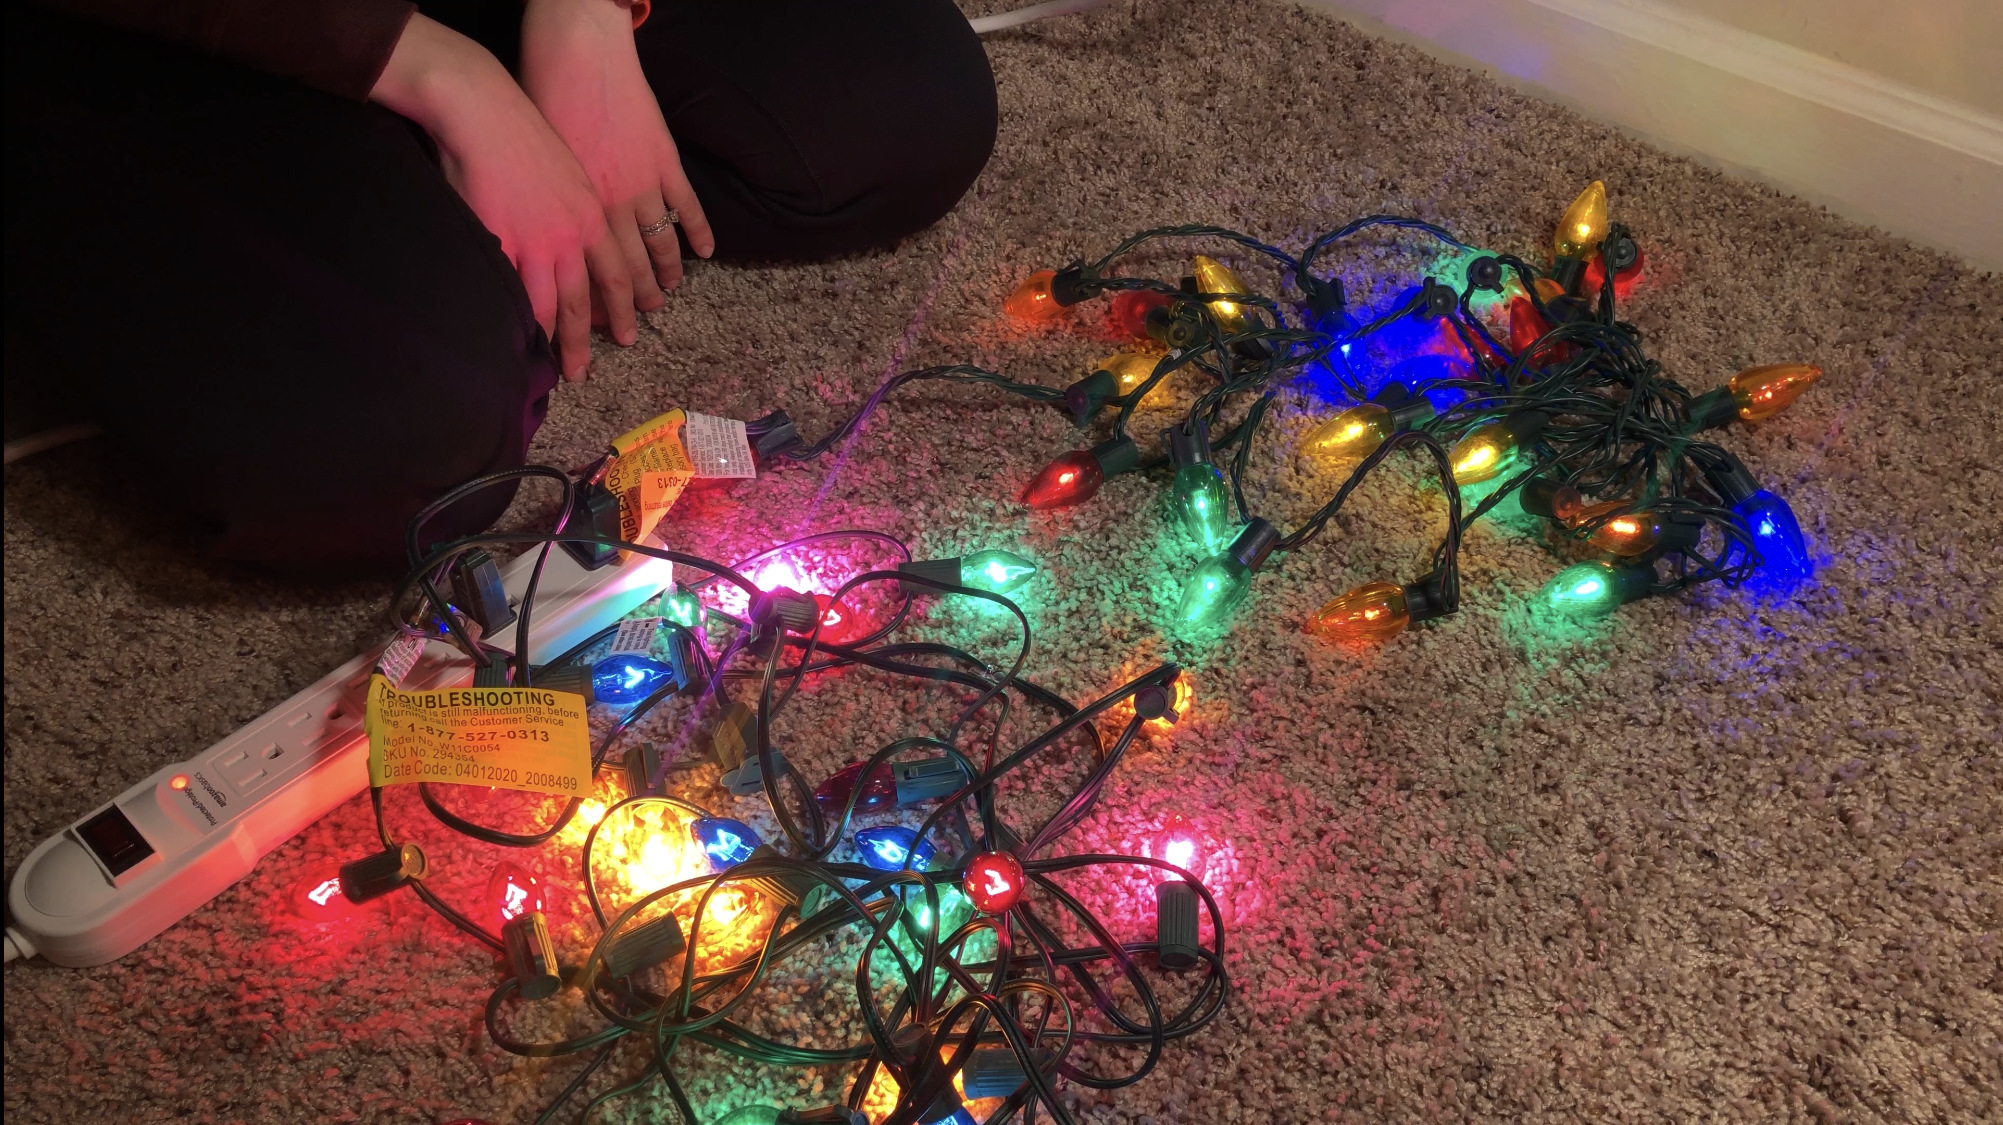 Comparing incandescent and LED Christmas lights